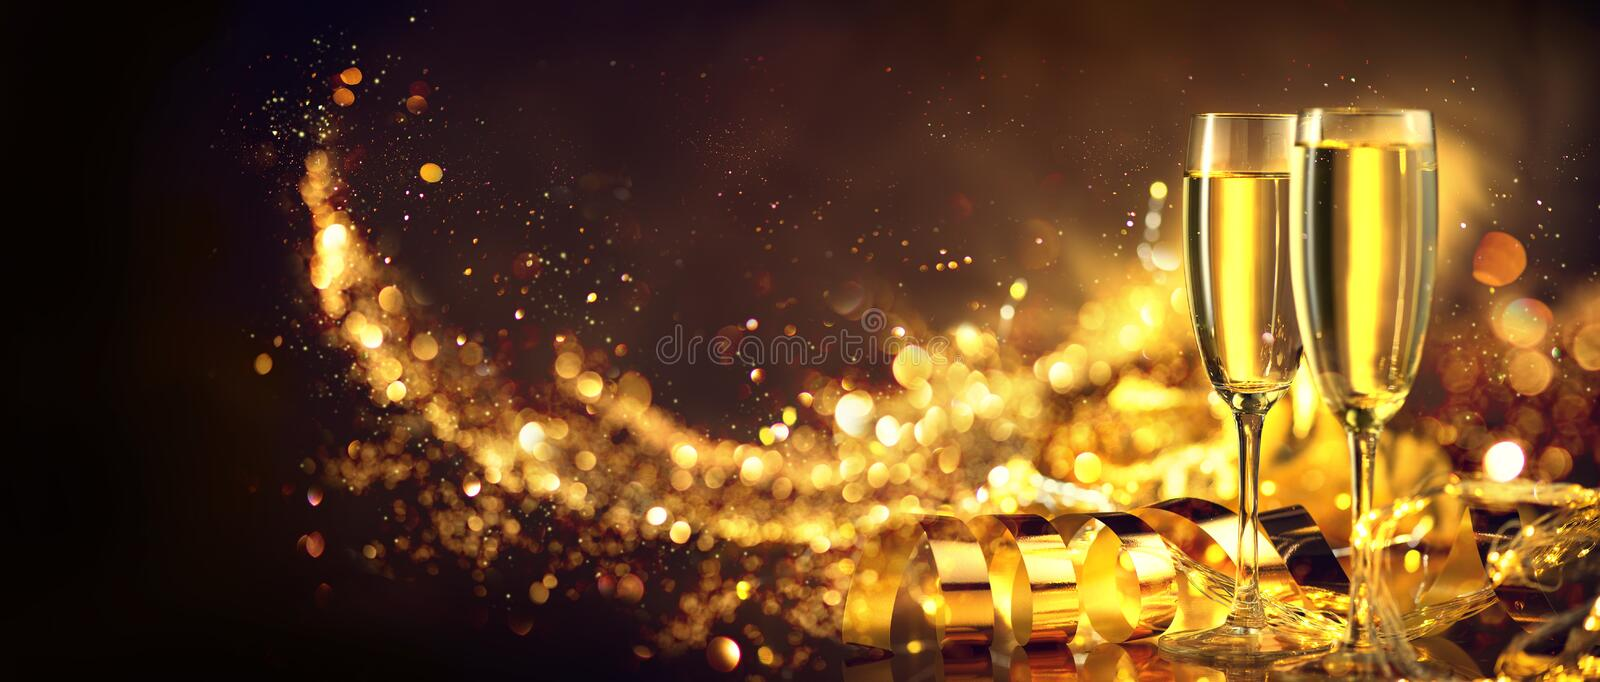 Christmas scene. Holiday champagne over golden glow background. Christmas and New Year celebration. Two flutes with sparkling wine royalty free stock photos